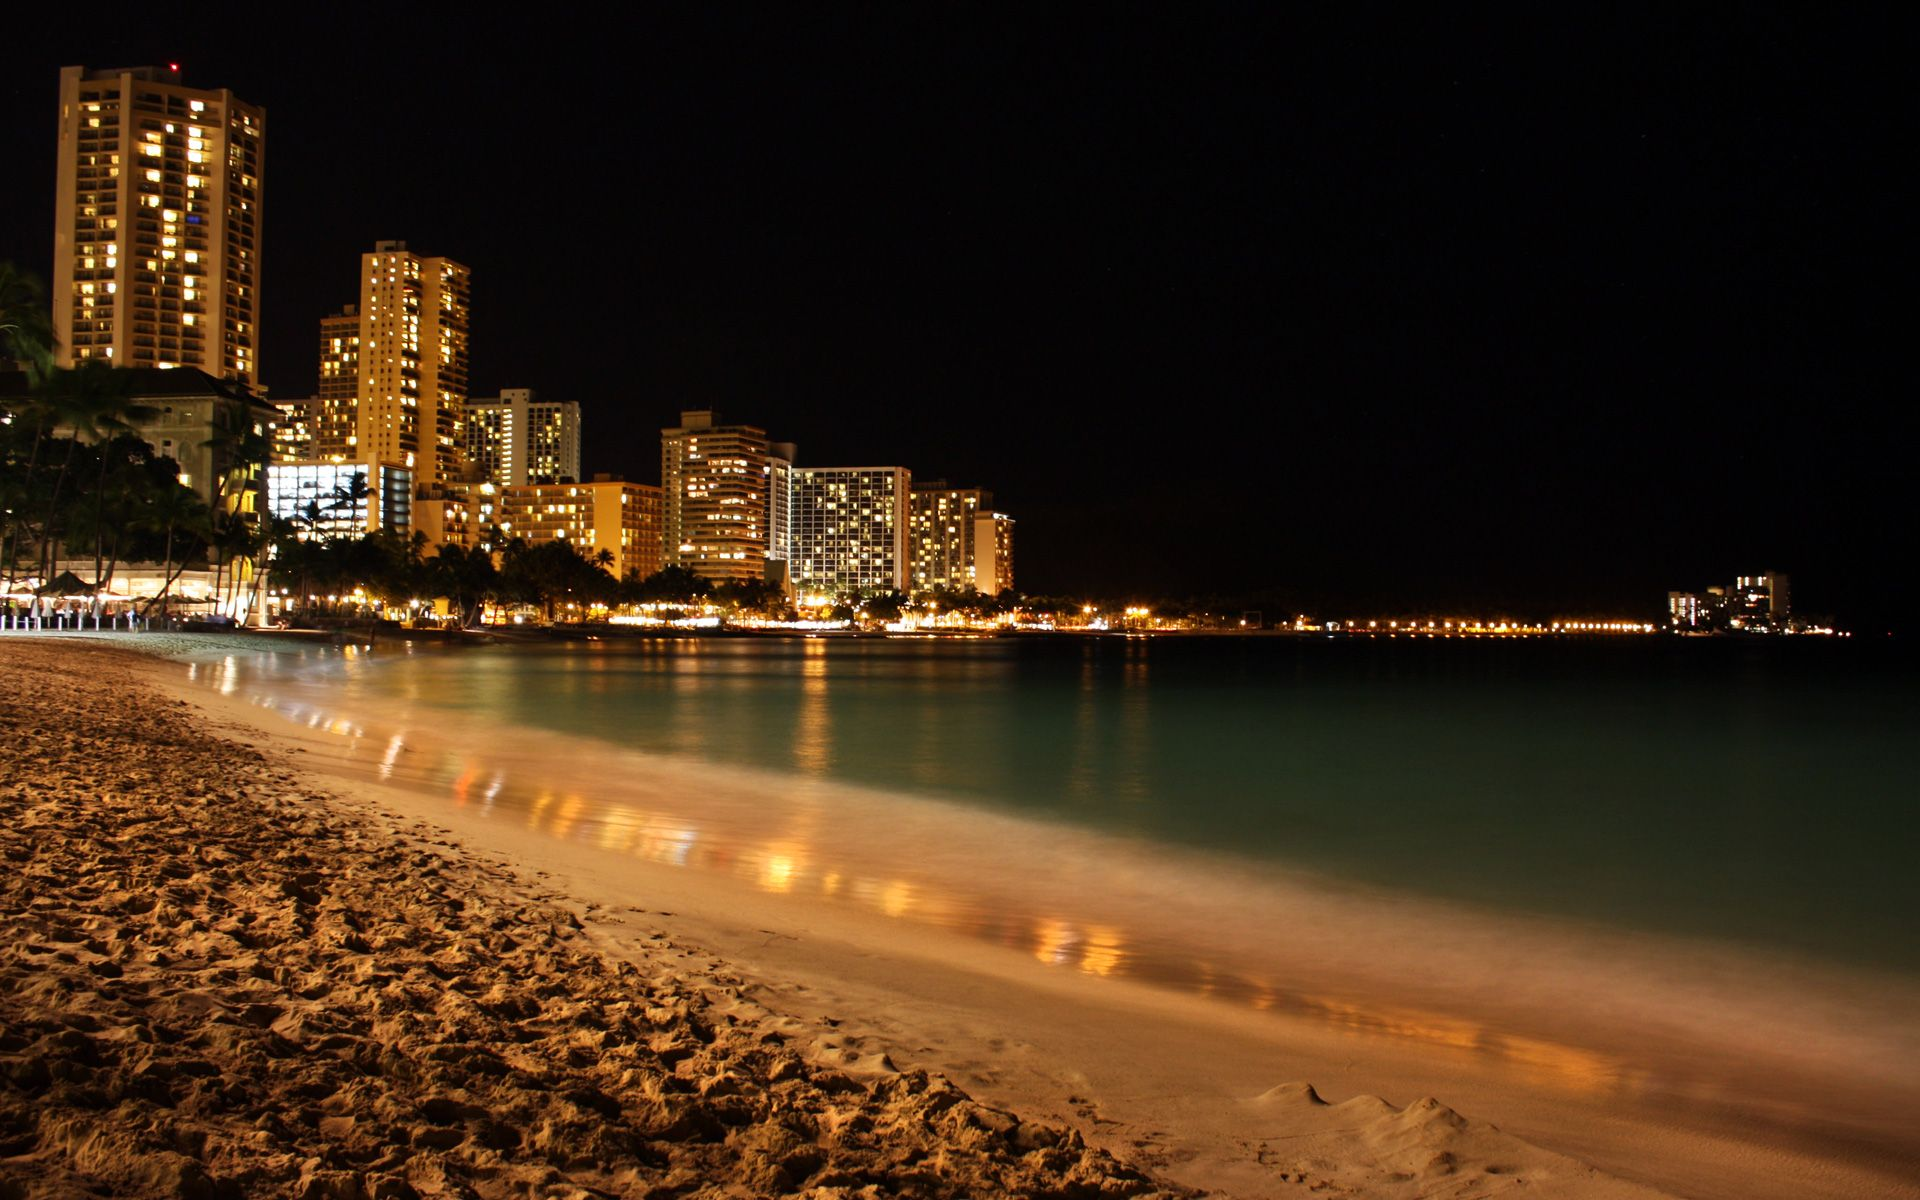 Hd wallpaper night - Night Beach Wallpaper Full Hd With Wallpapers Wide Resolution 1920x1200 Px 672 12 Kb